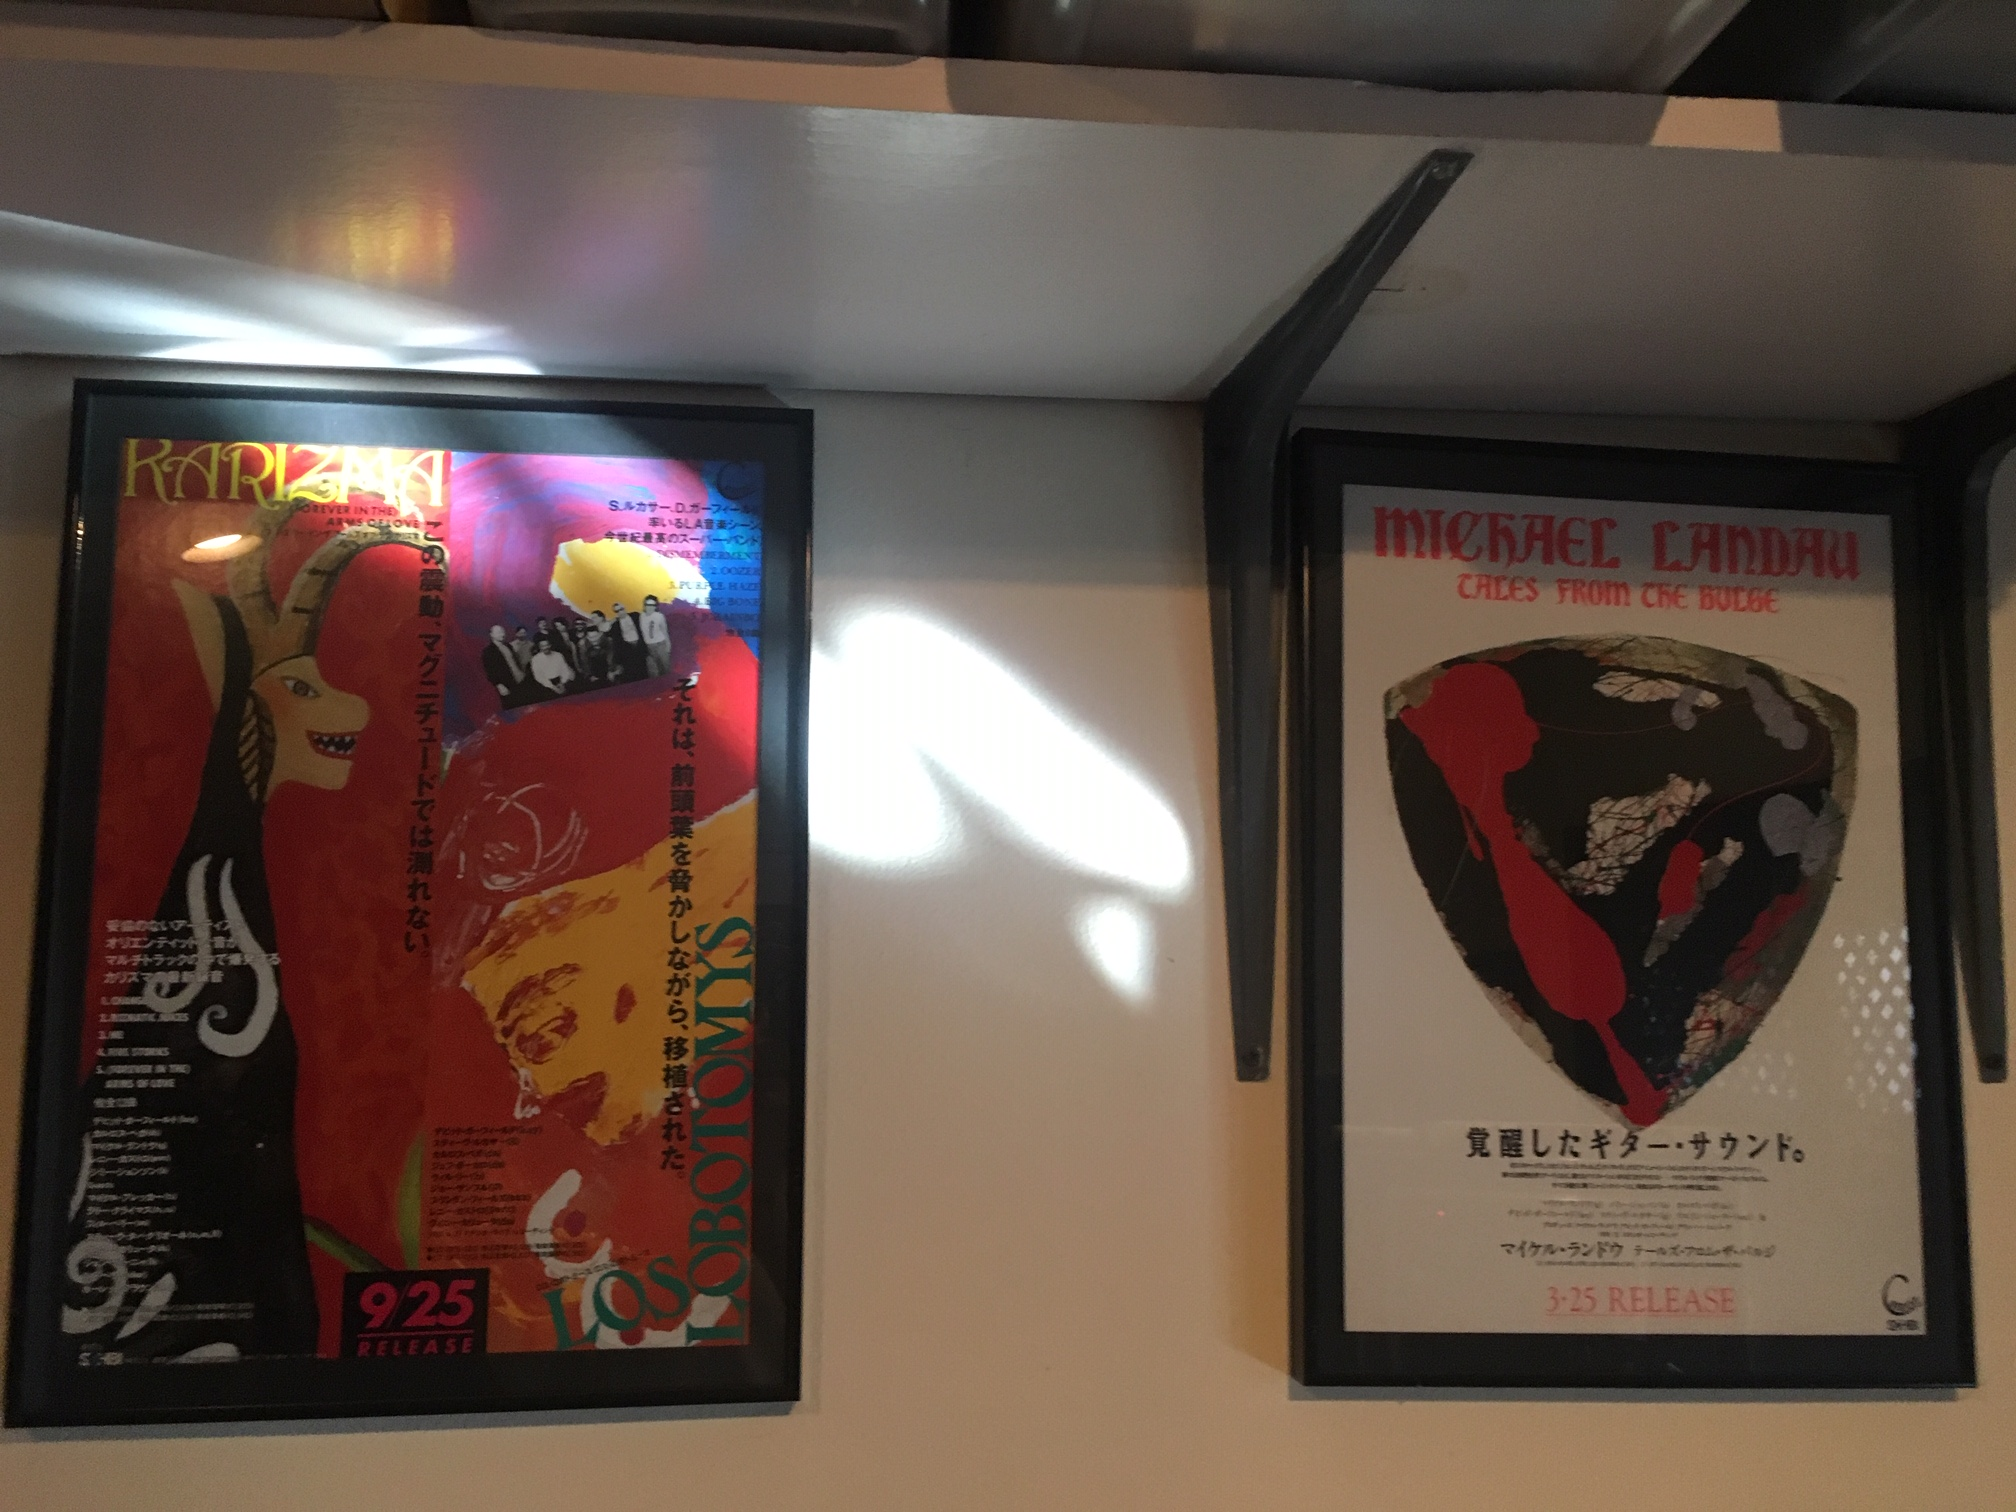 Original CD posters from Creatchy Records